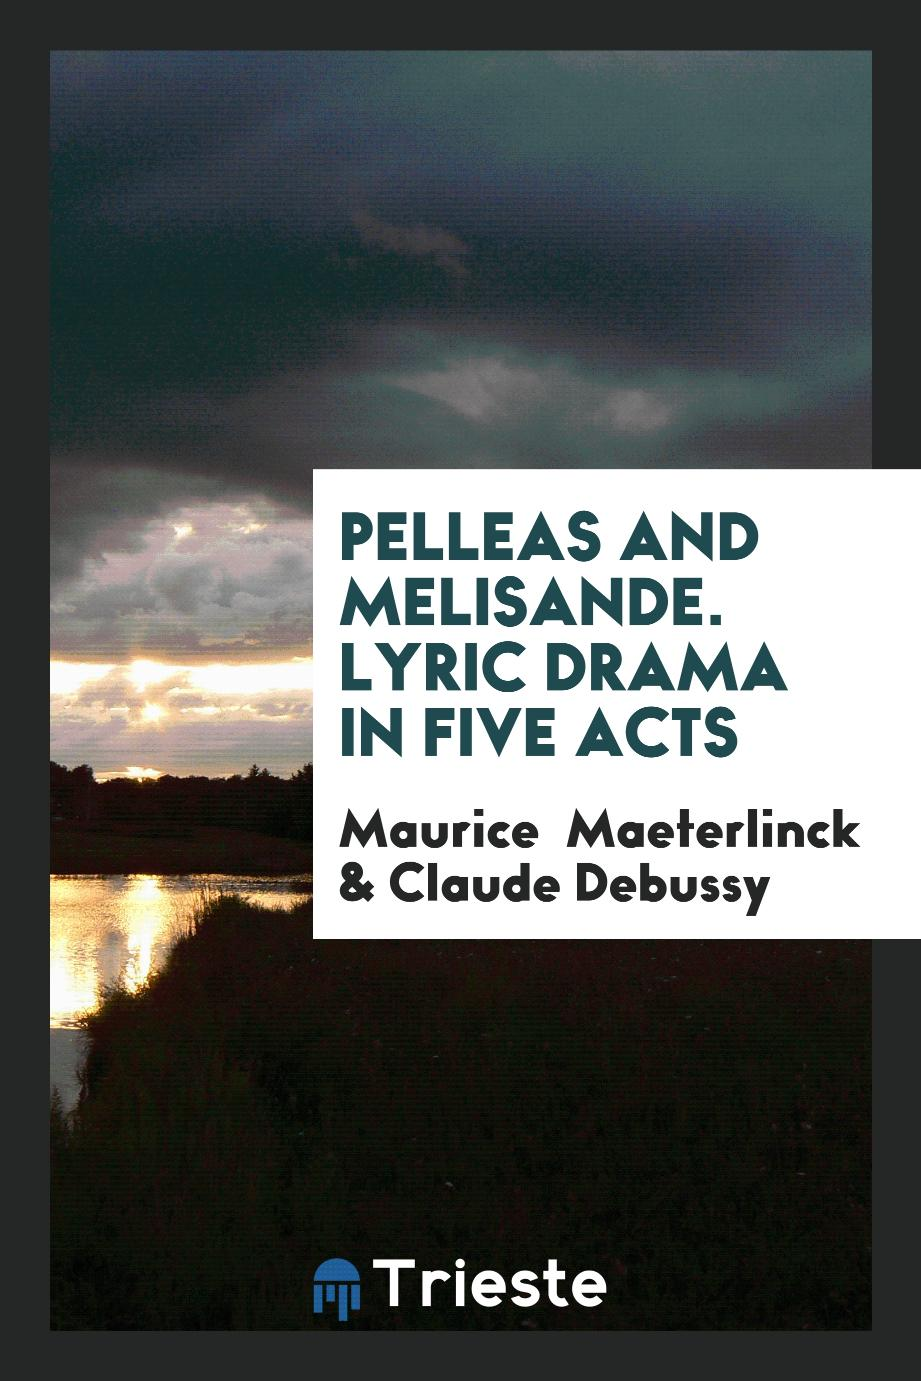 Pelleas and Melisande. Lyric drama in Five Acts